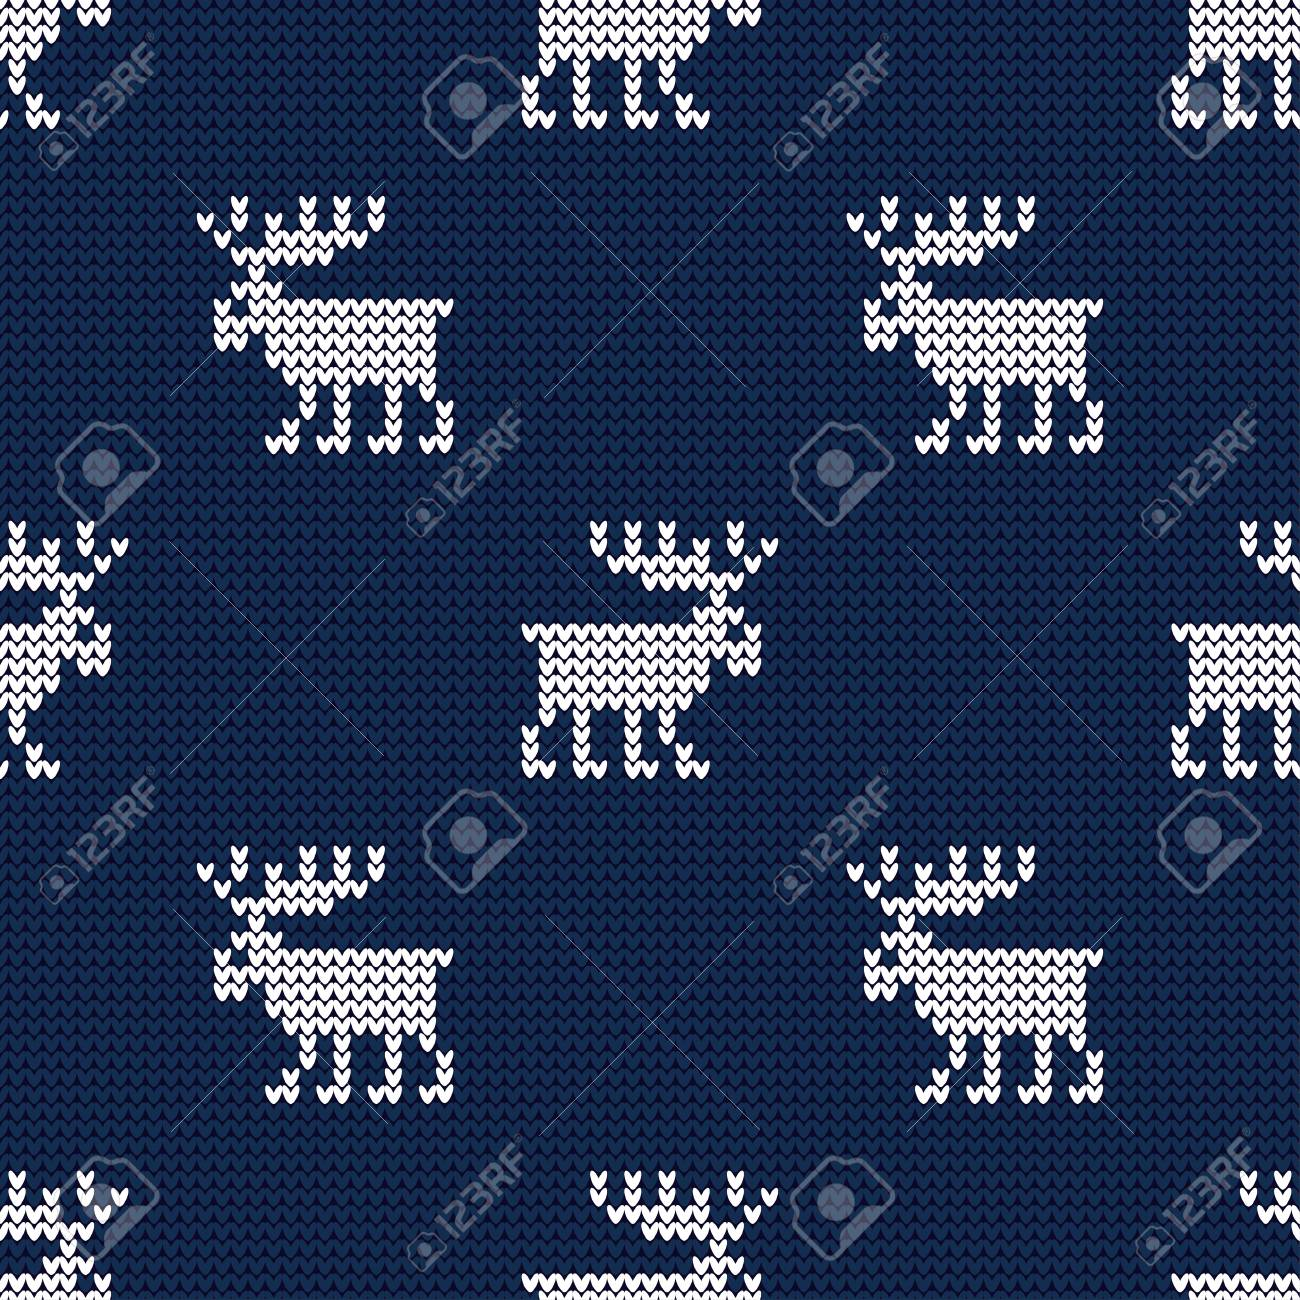 A knitted sweater with Reindeer. Seamless vector background. Christmas pattern. Can be used for wallpaper, textile, wrapping, web page background. - 111185392